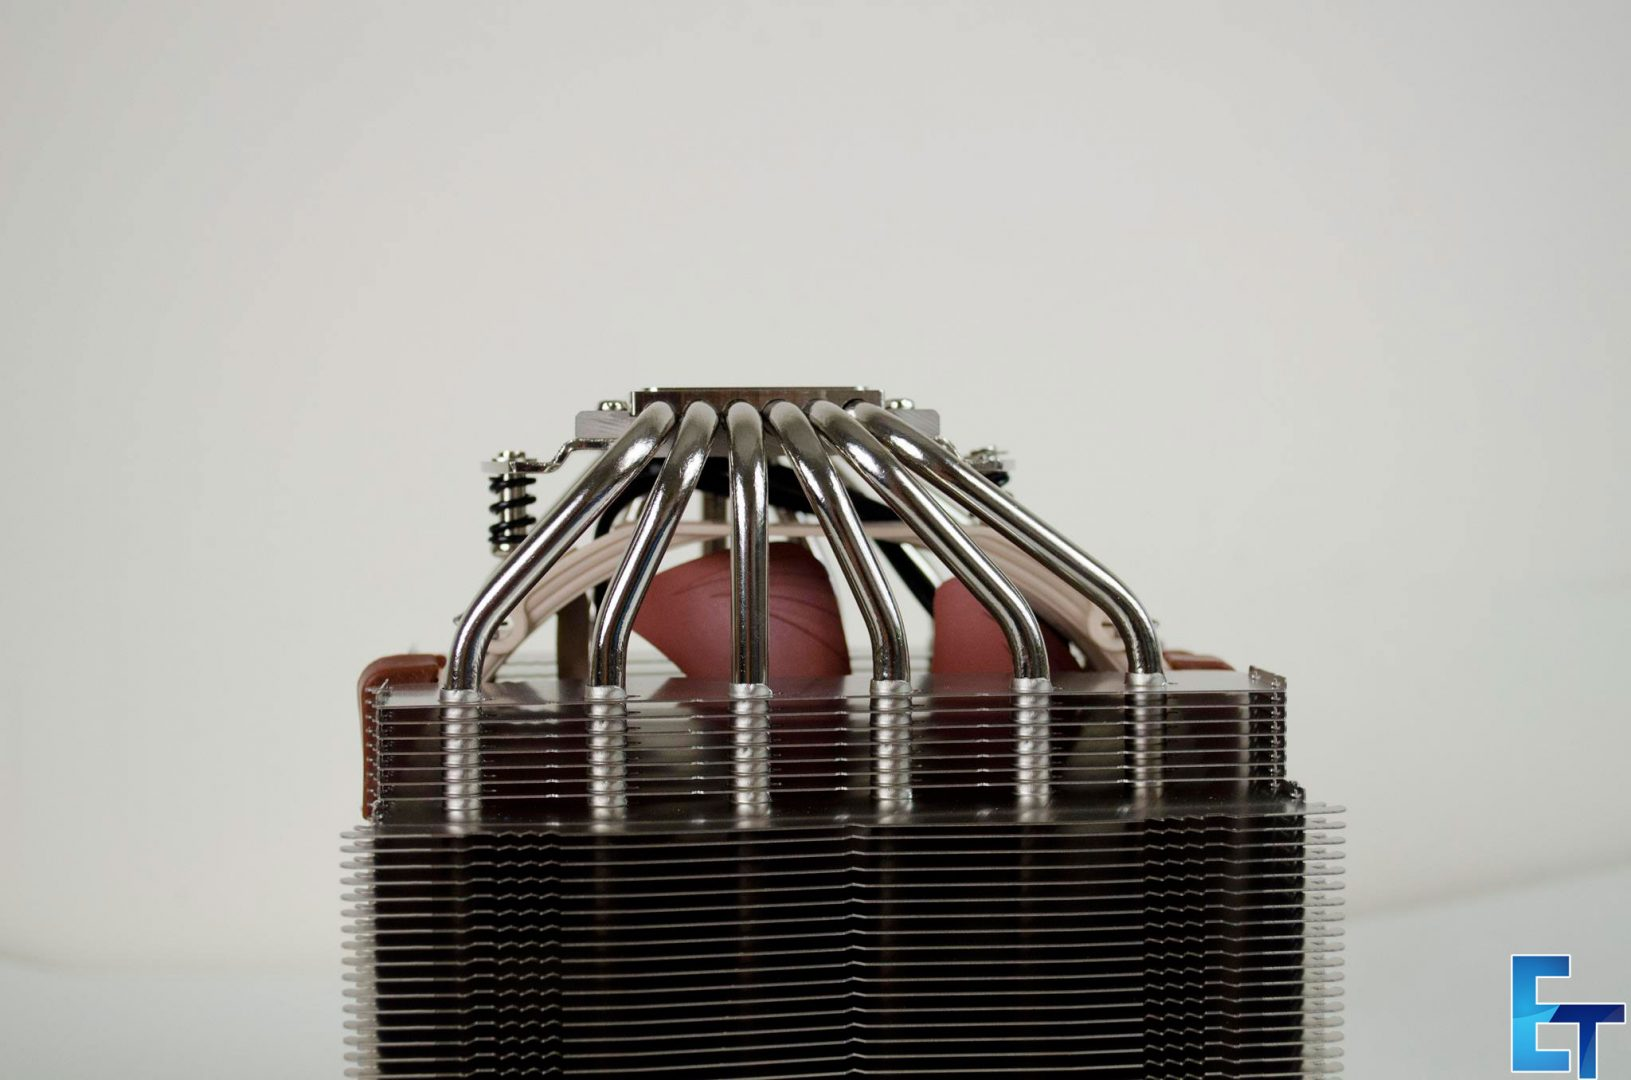 Noctua-NHD15S-CPU-Cooler-Review_9